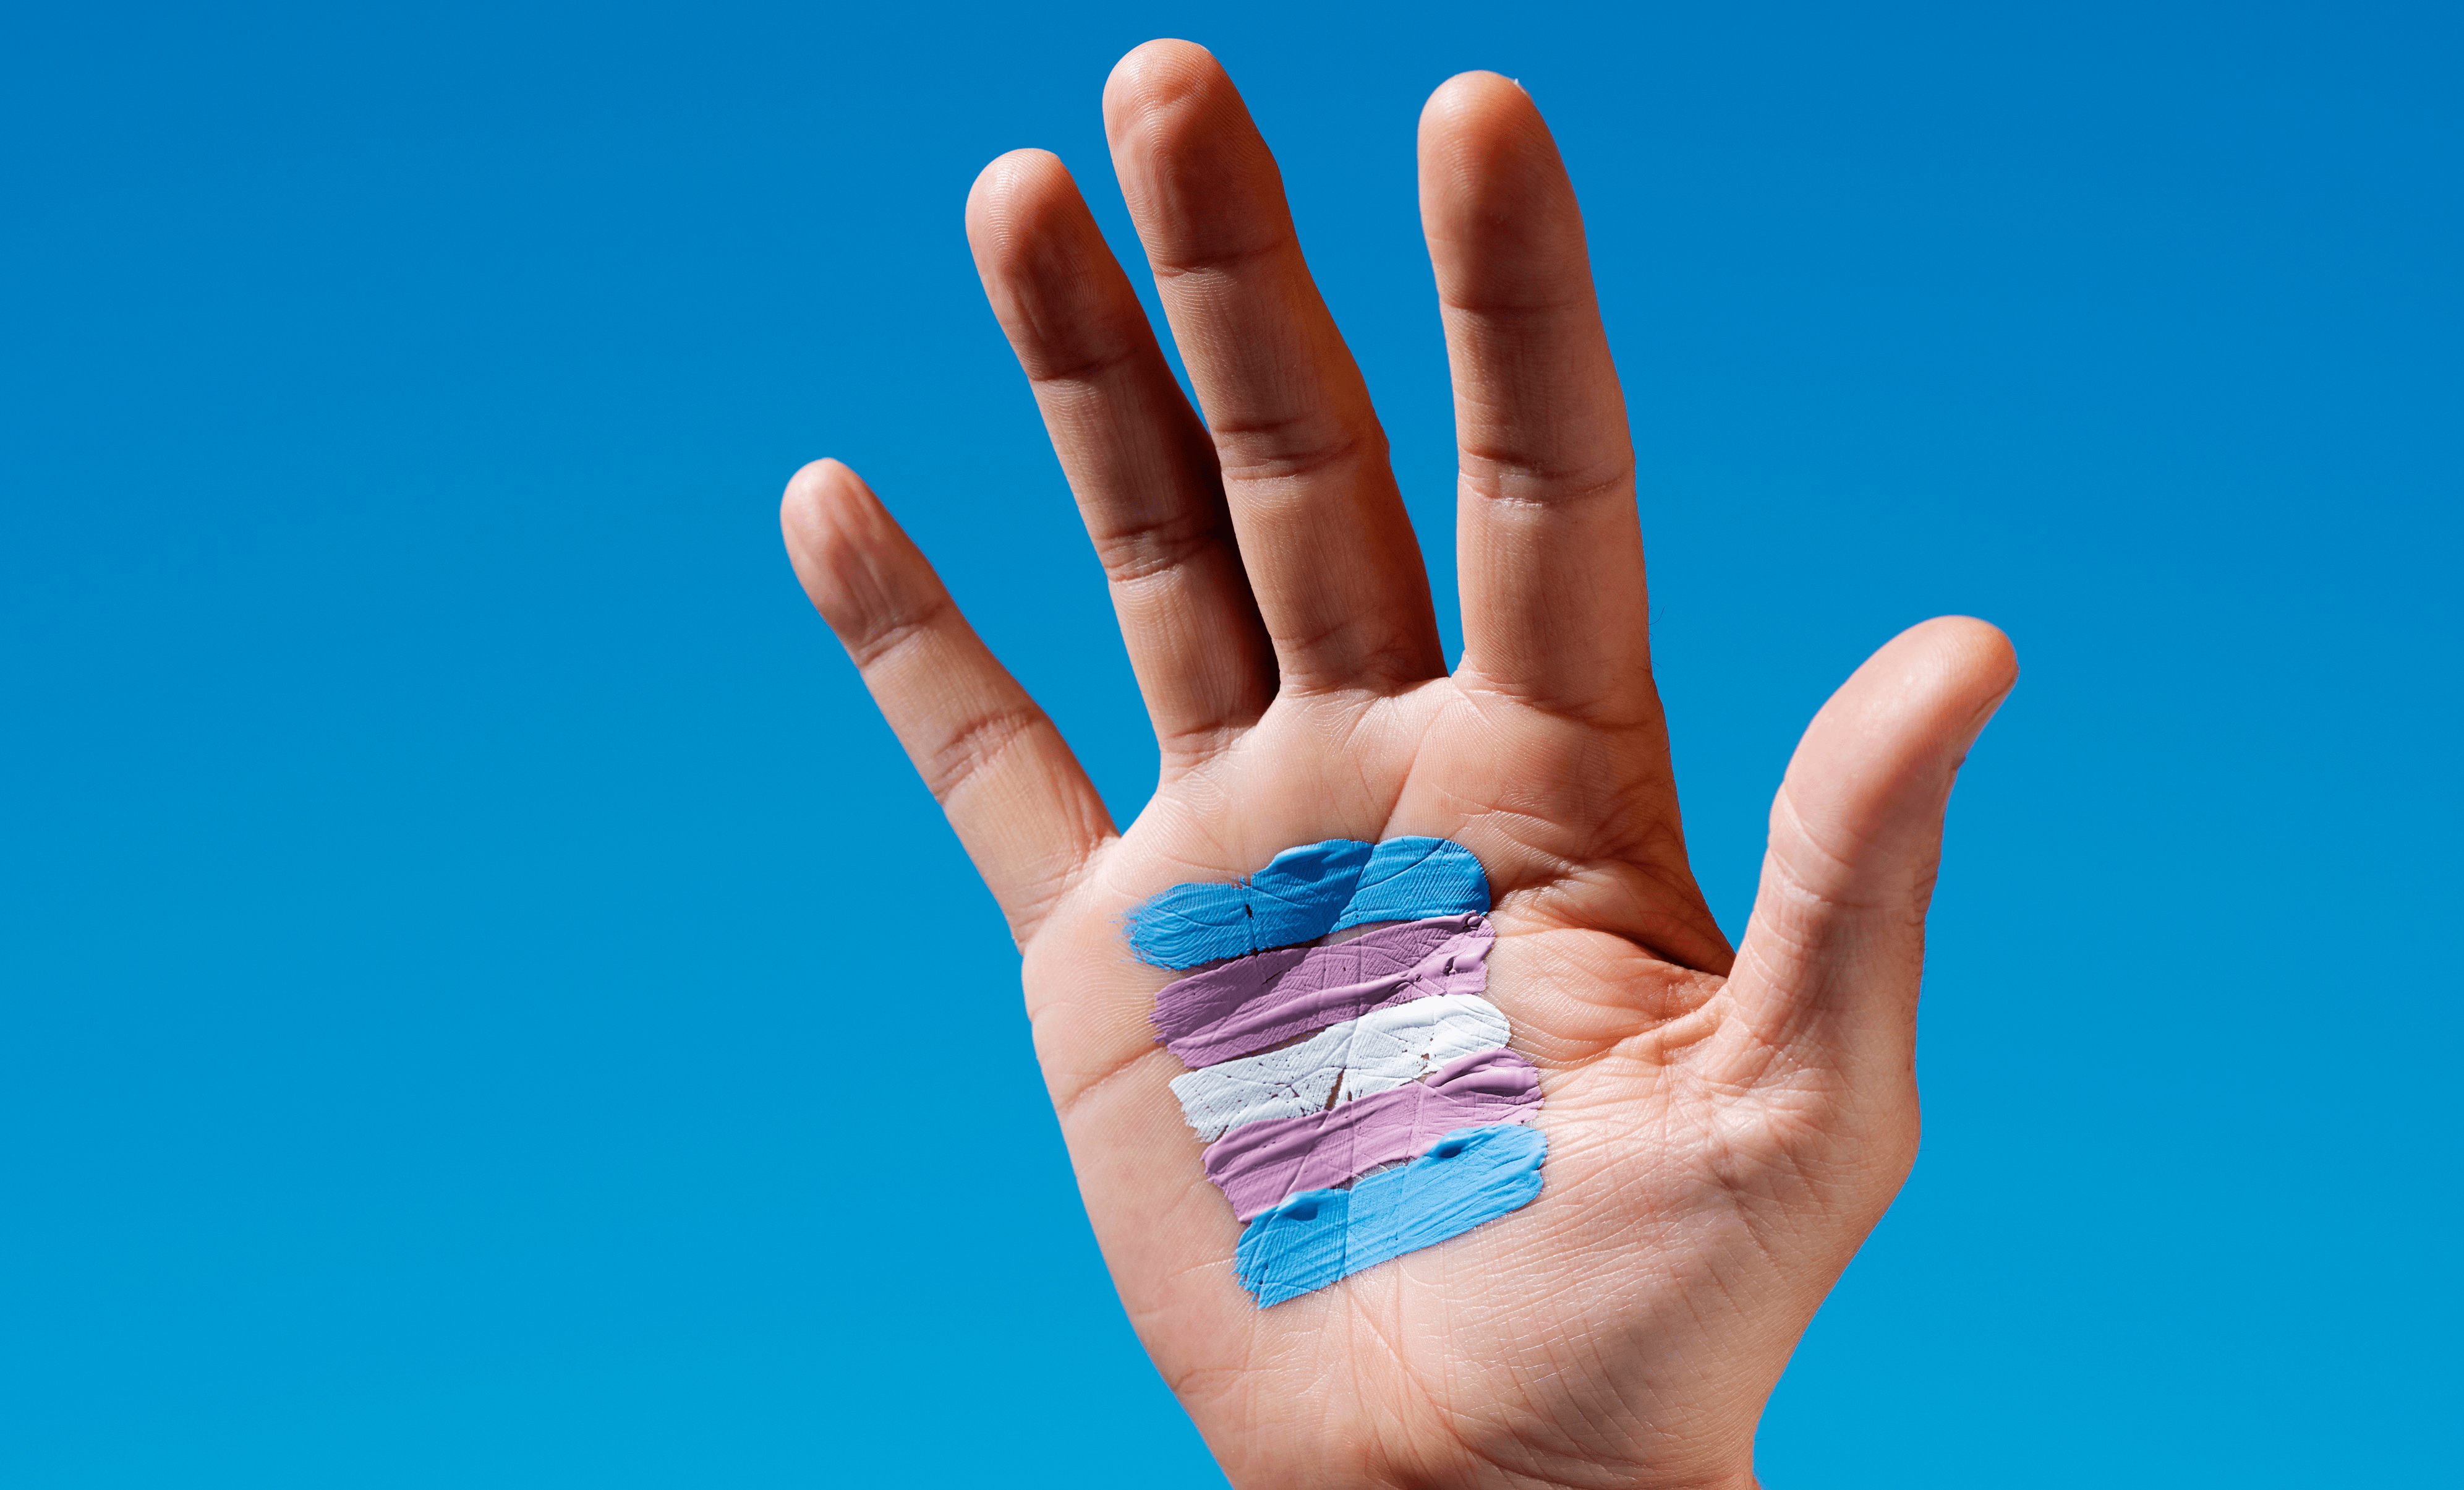 Photo of a hand raised up for help with a trans flag painted on its palm.